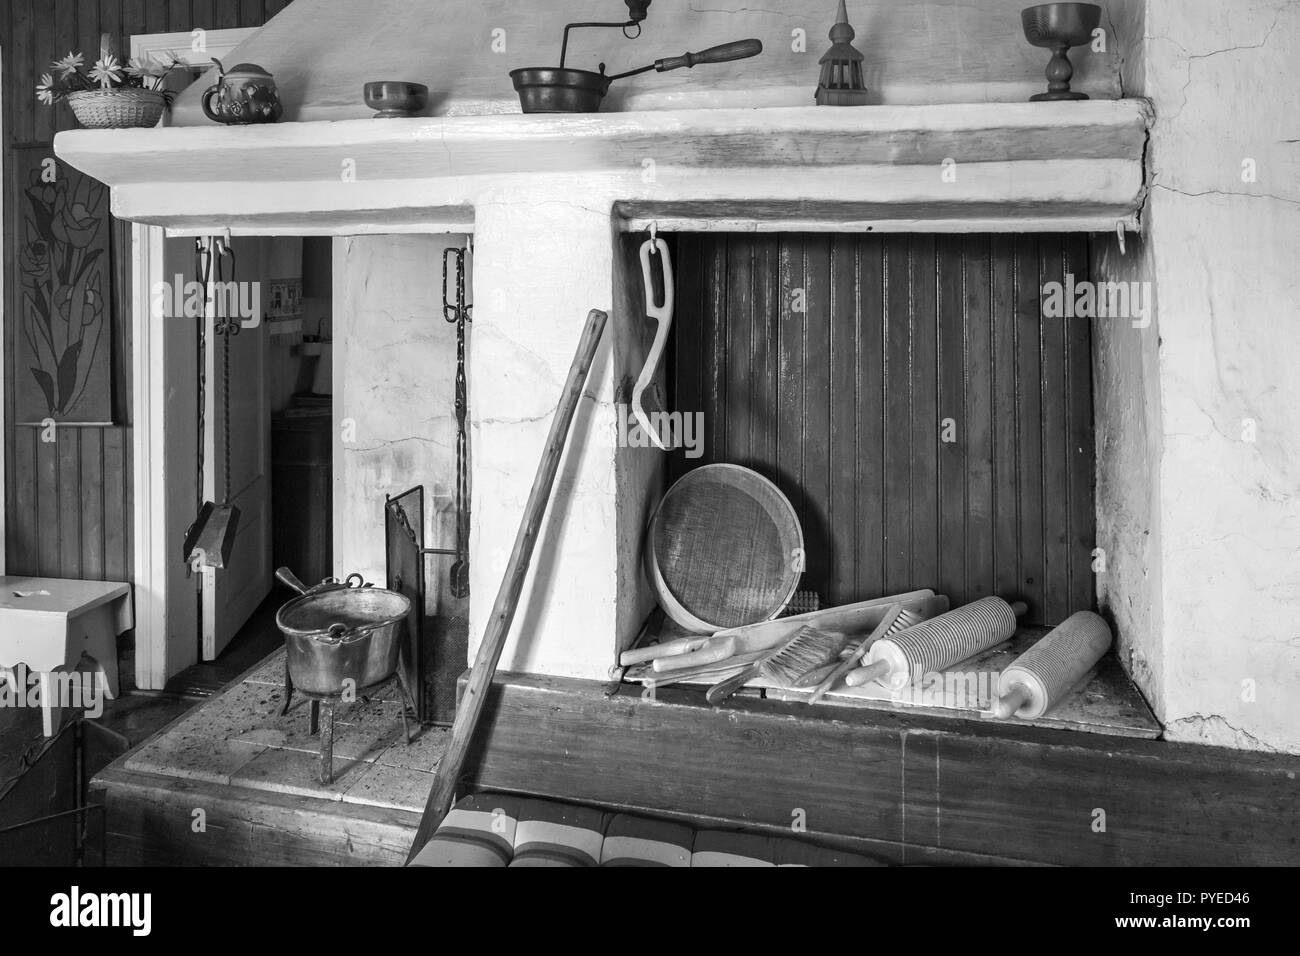 Cooking fireplace  and oven in an old Swedish farm house in northern Sweden - Stock Image